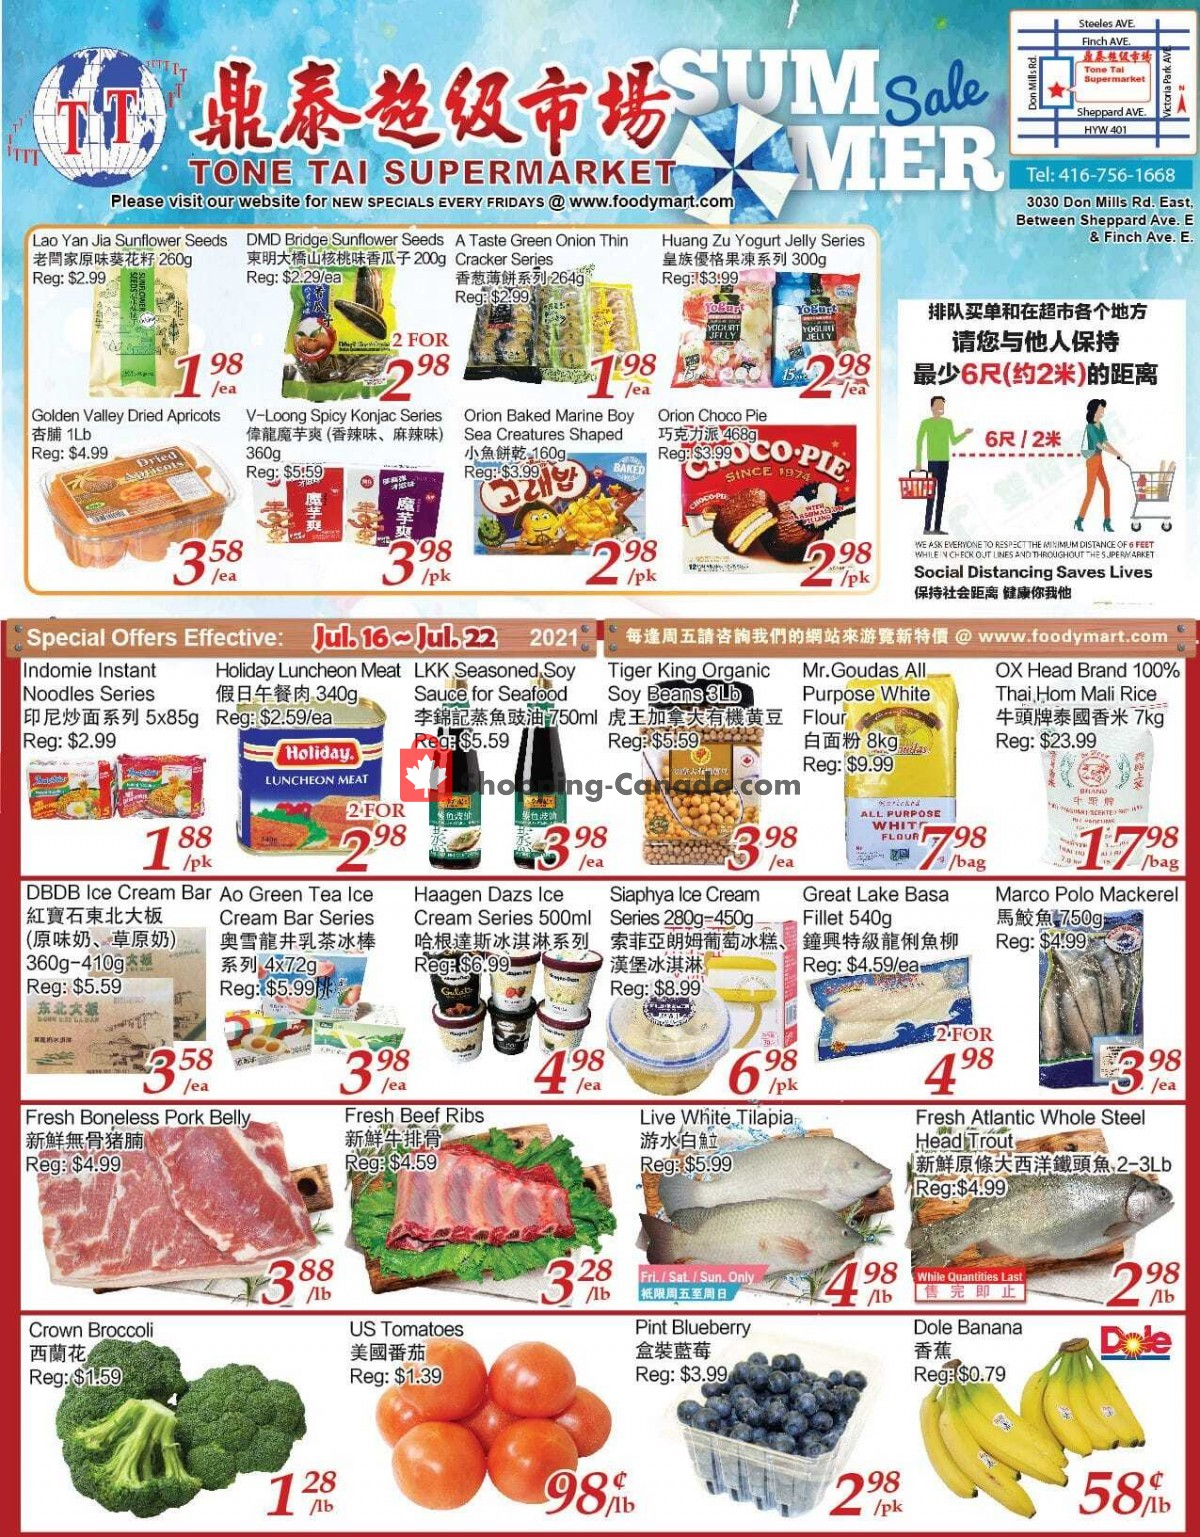 Flyer Tone Tai Supermarket Canada - from Friday July 16, 2021 to Thursday July 22, 2021